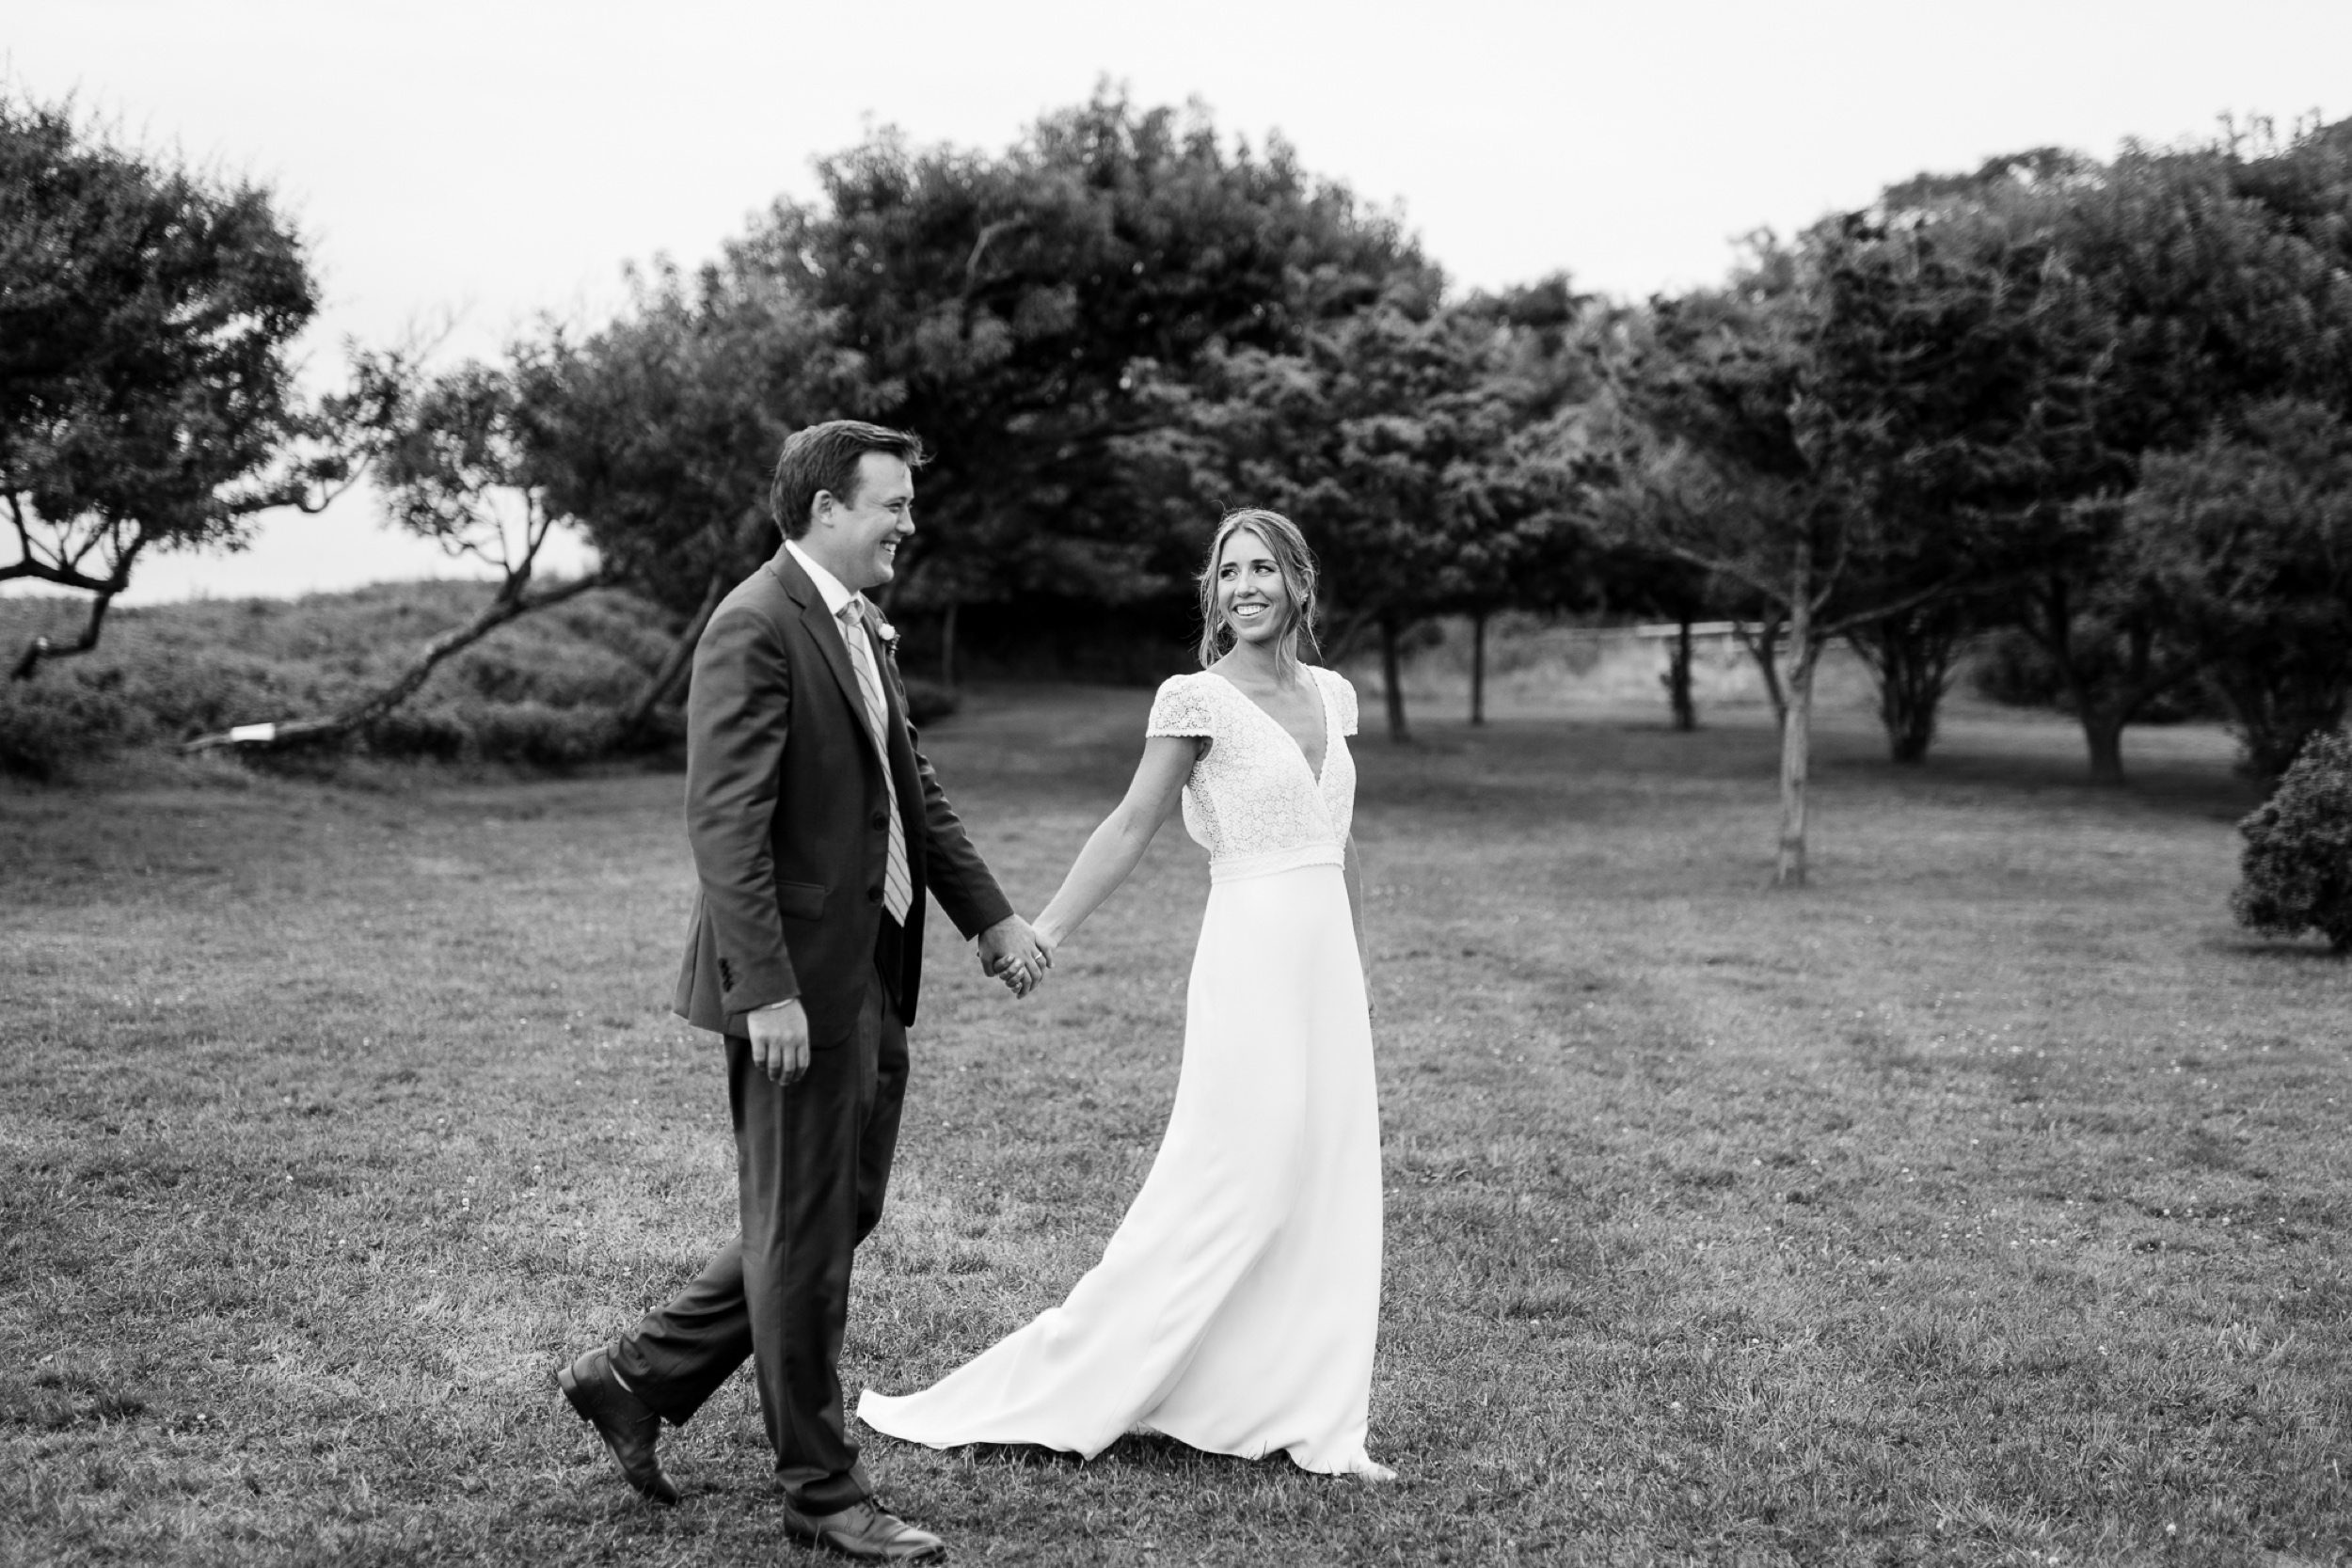 067_Kontokosta Winery Wedding Photos Greenport NY Wedding Photographer Longbrook Photography_0110.jpg